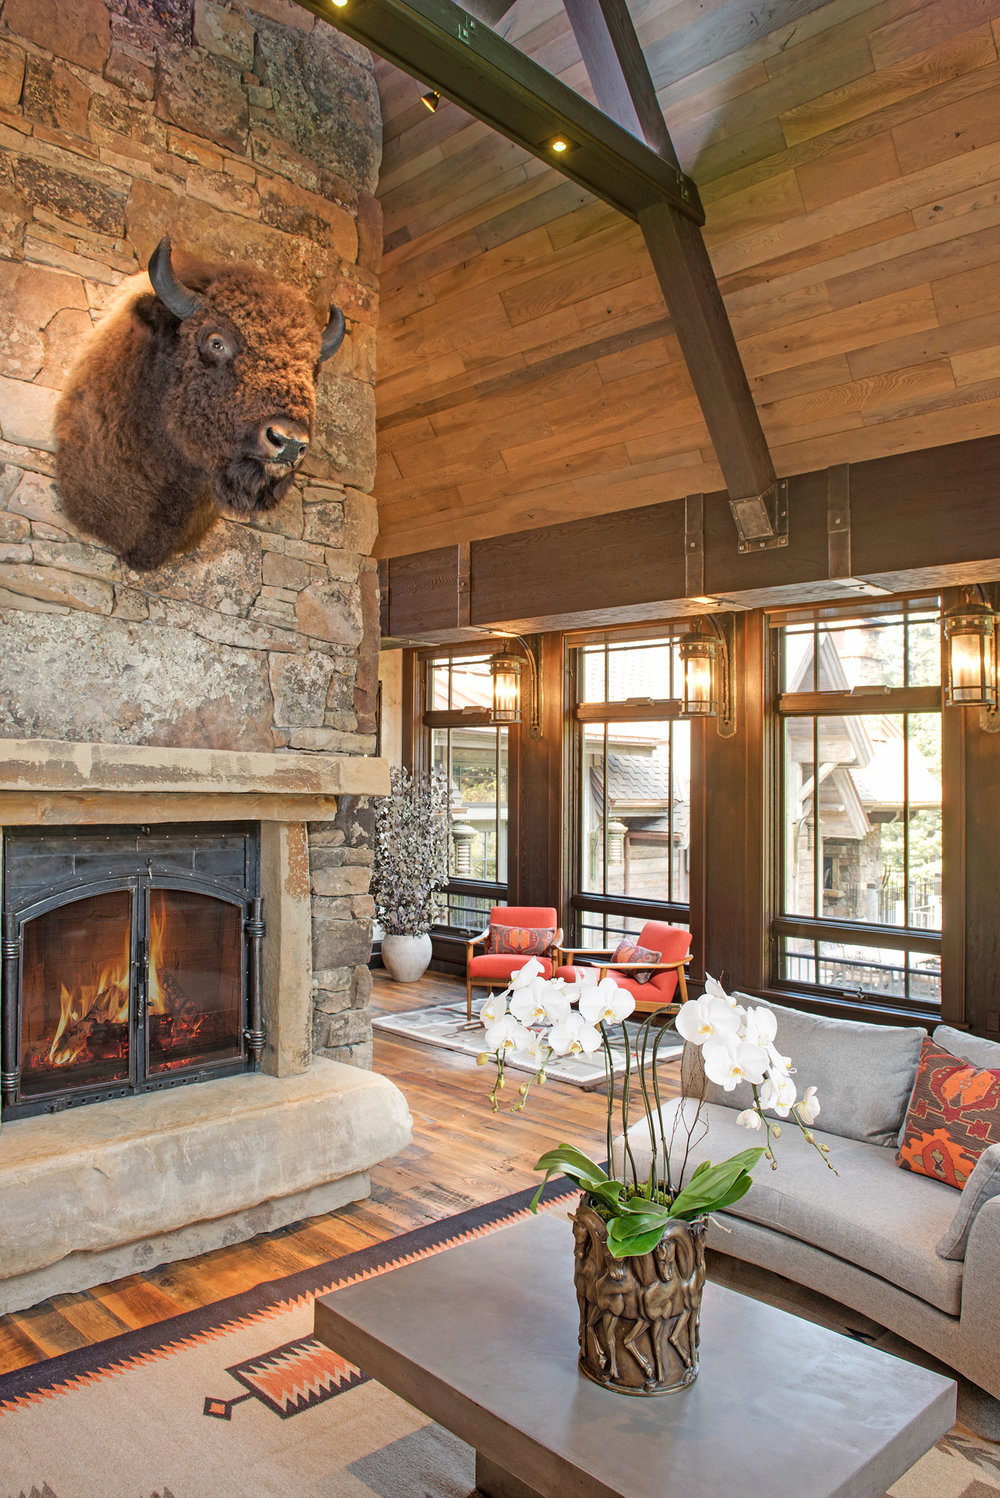 What is a Montana home without a large stone fireplace?  The architecture is amazing!  I love how you can sit by the fire while looking out the windows and enjoying the outdoors.